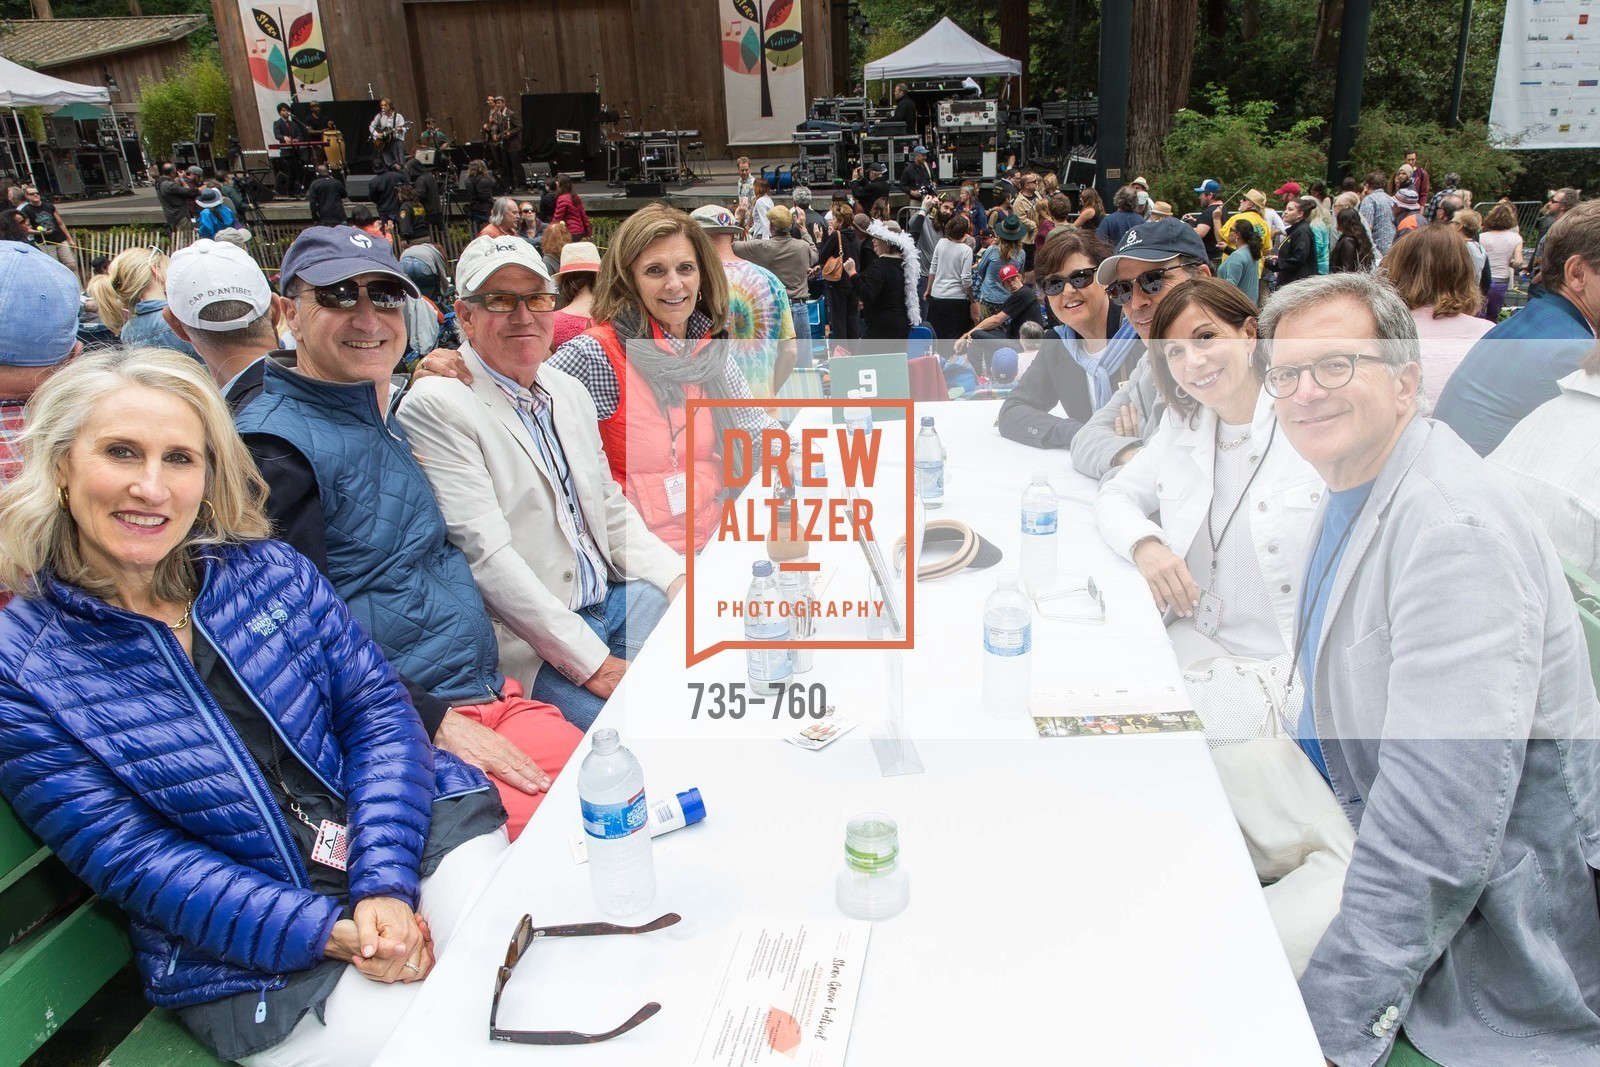 Jamie Myer, Mike Myer, Lisa Schatz, Steven Schatz, The Big Picnic! A Benefit & Concert for STERN GROVE FESTIVAL, US, June 14th, 2015,Drew Altizer, Drew Altizer Photography, full-service agency, private events, San Francisco photographer, photographer california